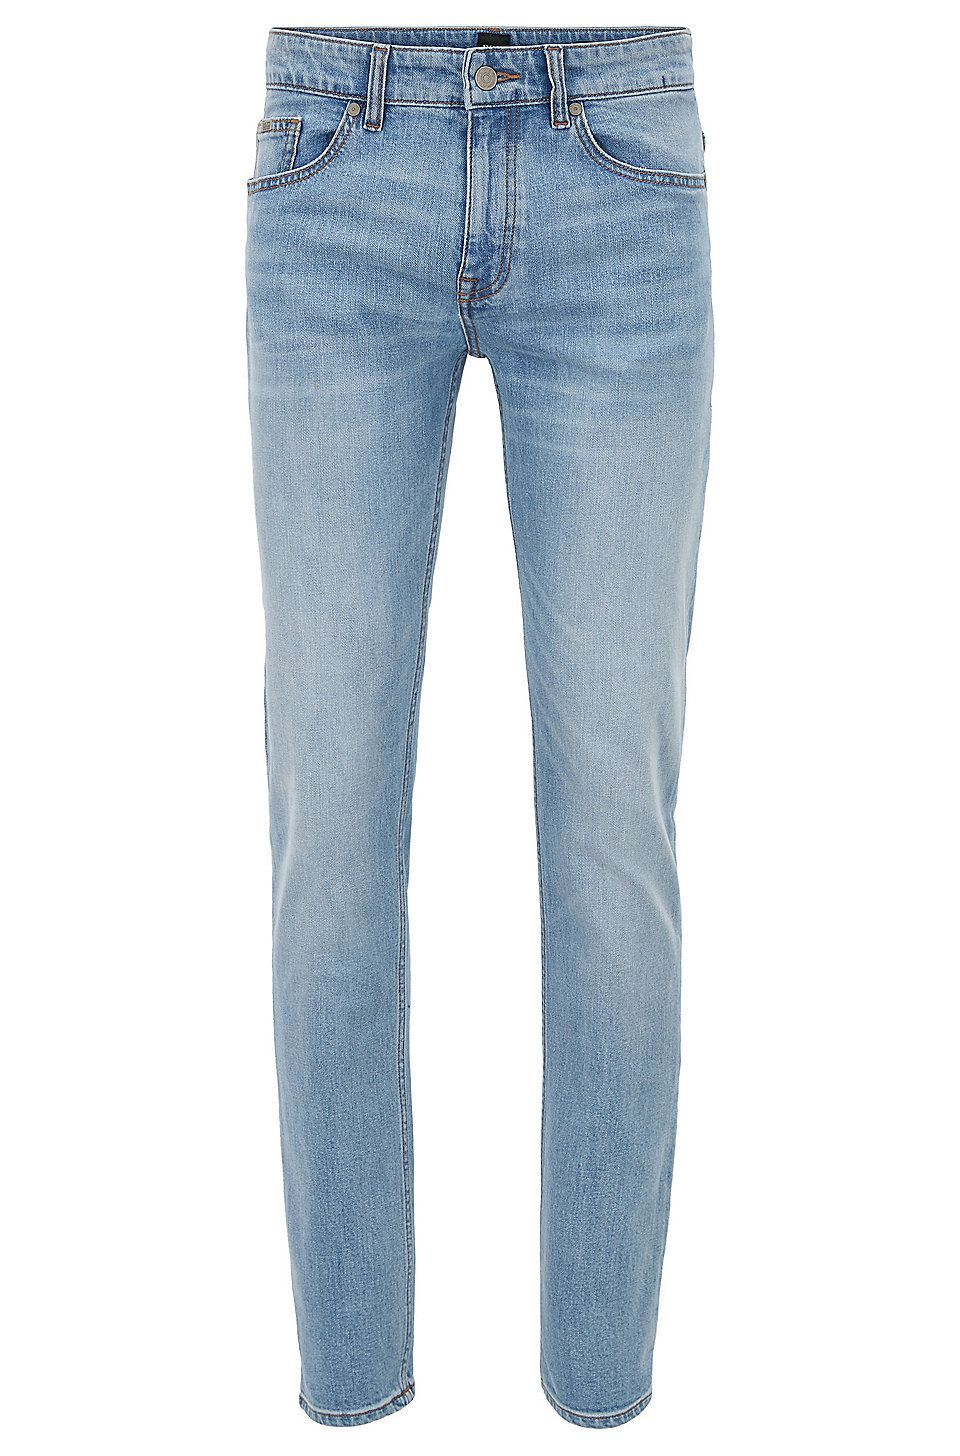 516add443de HUGO BOSS Slim-fit jeans in distressed comfort-stretch denim - Light Blue  Jeans from BOSS for Men in the official HUGO BOSS Online Store free  shipping   ...